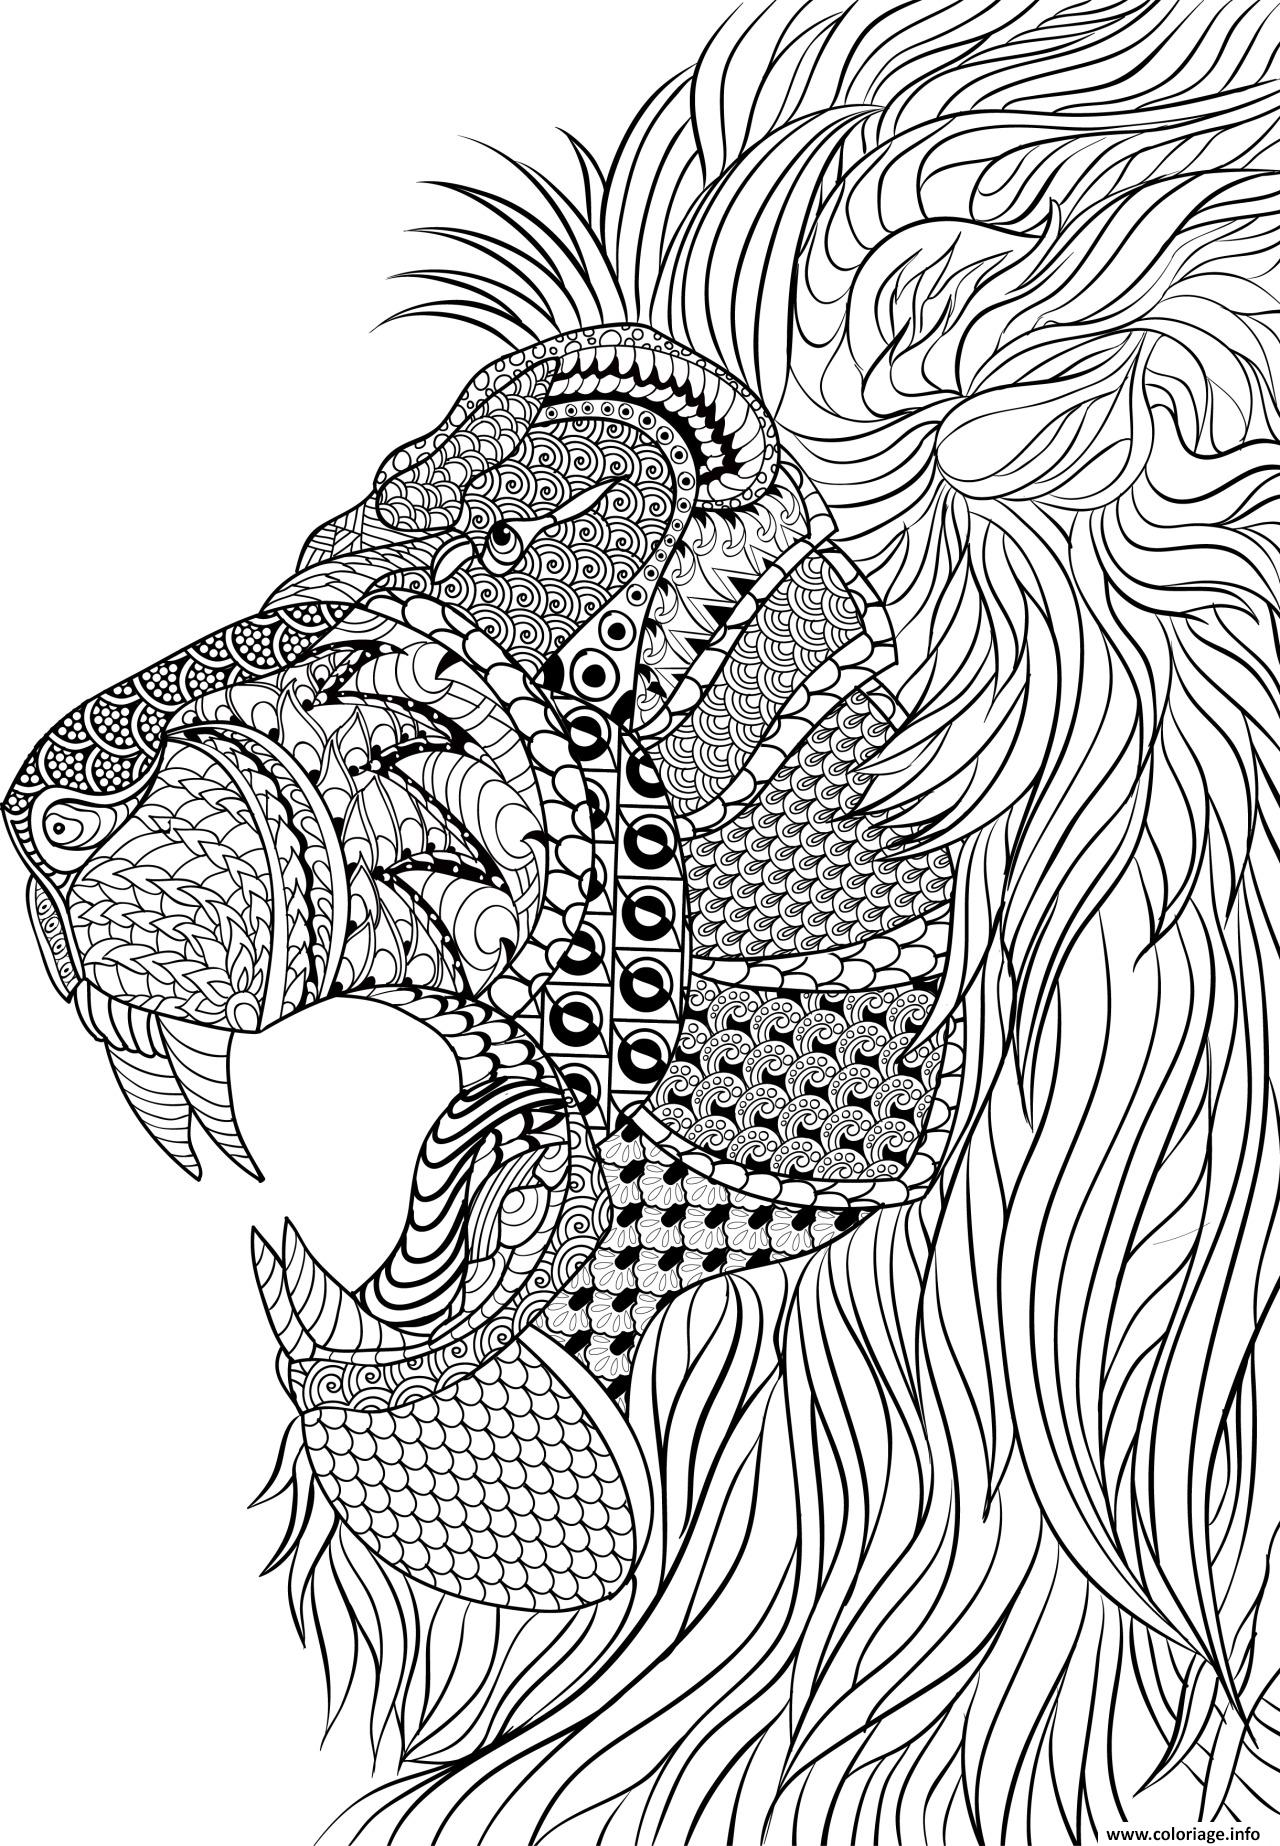 Coloriage lion adulte anti stress dessin - Coloriage anti stress gratuit ...